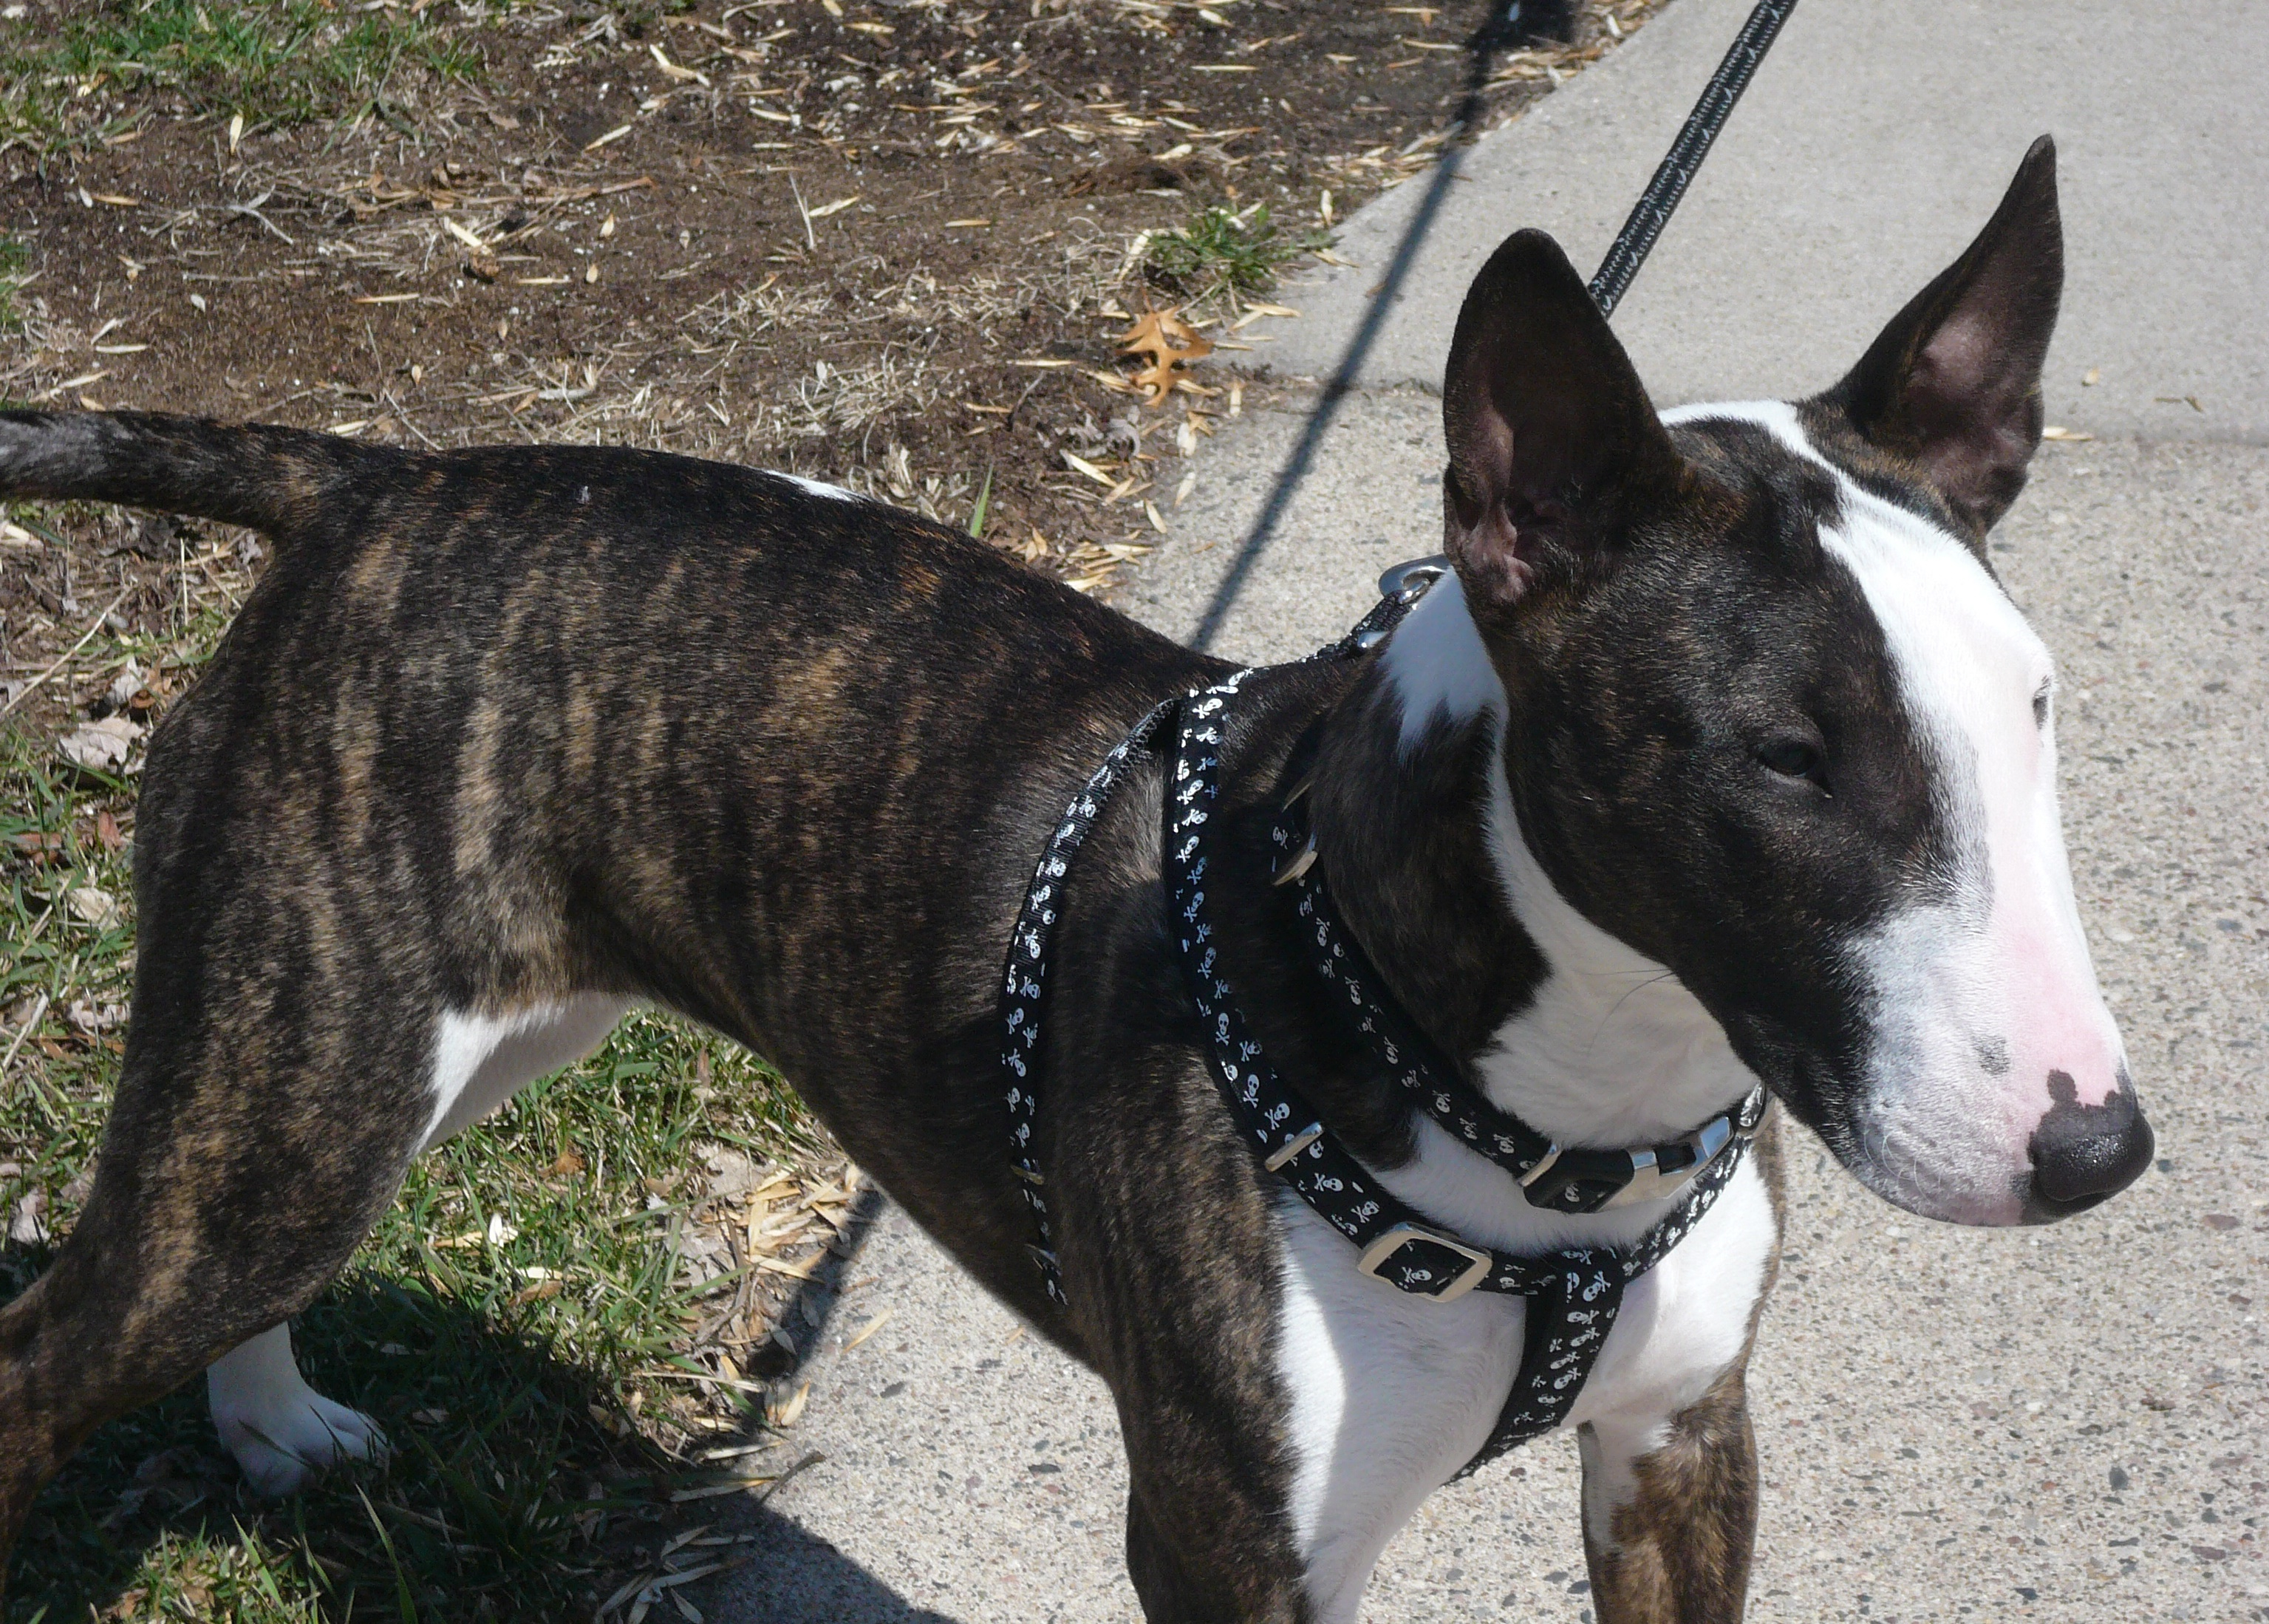 Bull Terrier Harness Manufacturers Wire Center Mixedcircuits Delabs Schematics Electronic Circuit Best For Bullies Strictly Terriers Rh Bulliesofnc Com Collars Corgi Mix